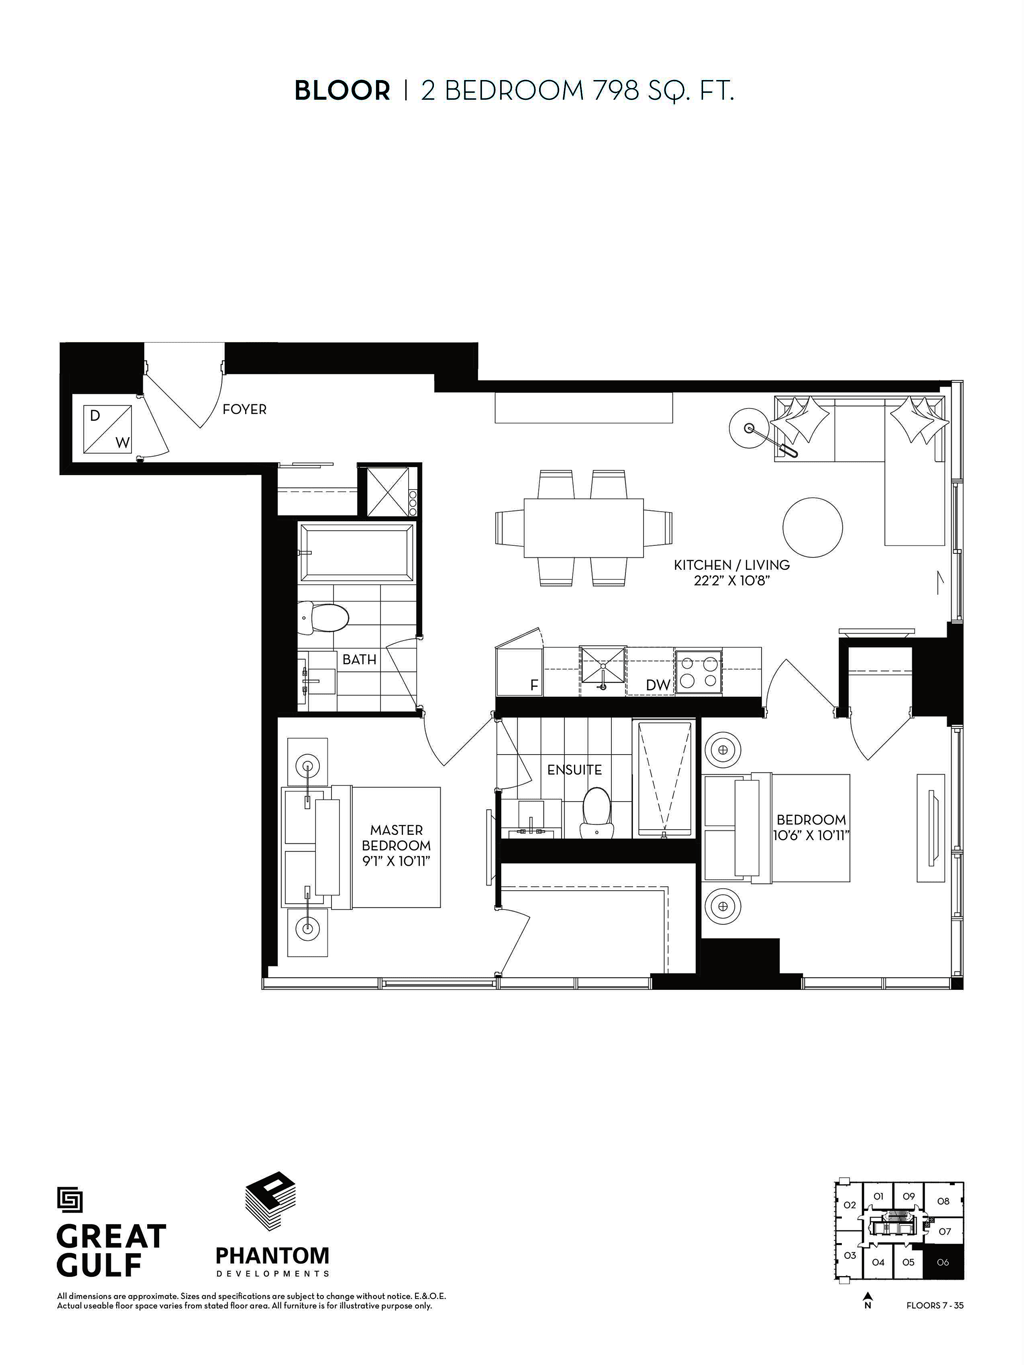 8 CUMBERLAND VIP ACCESS - FLOORPLANS TWO BEDROOM 798 SQ FT